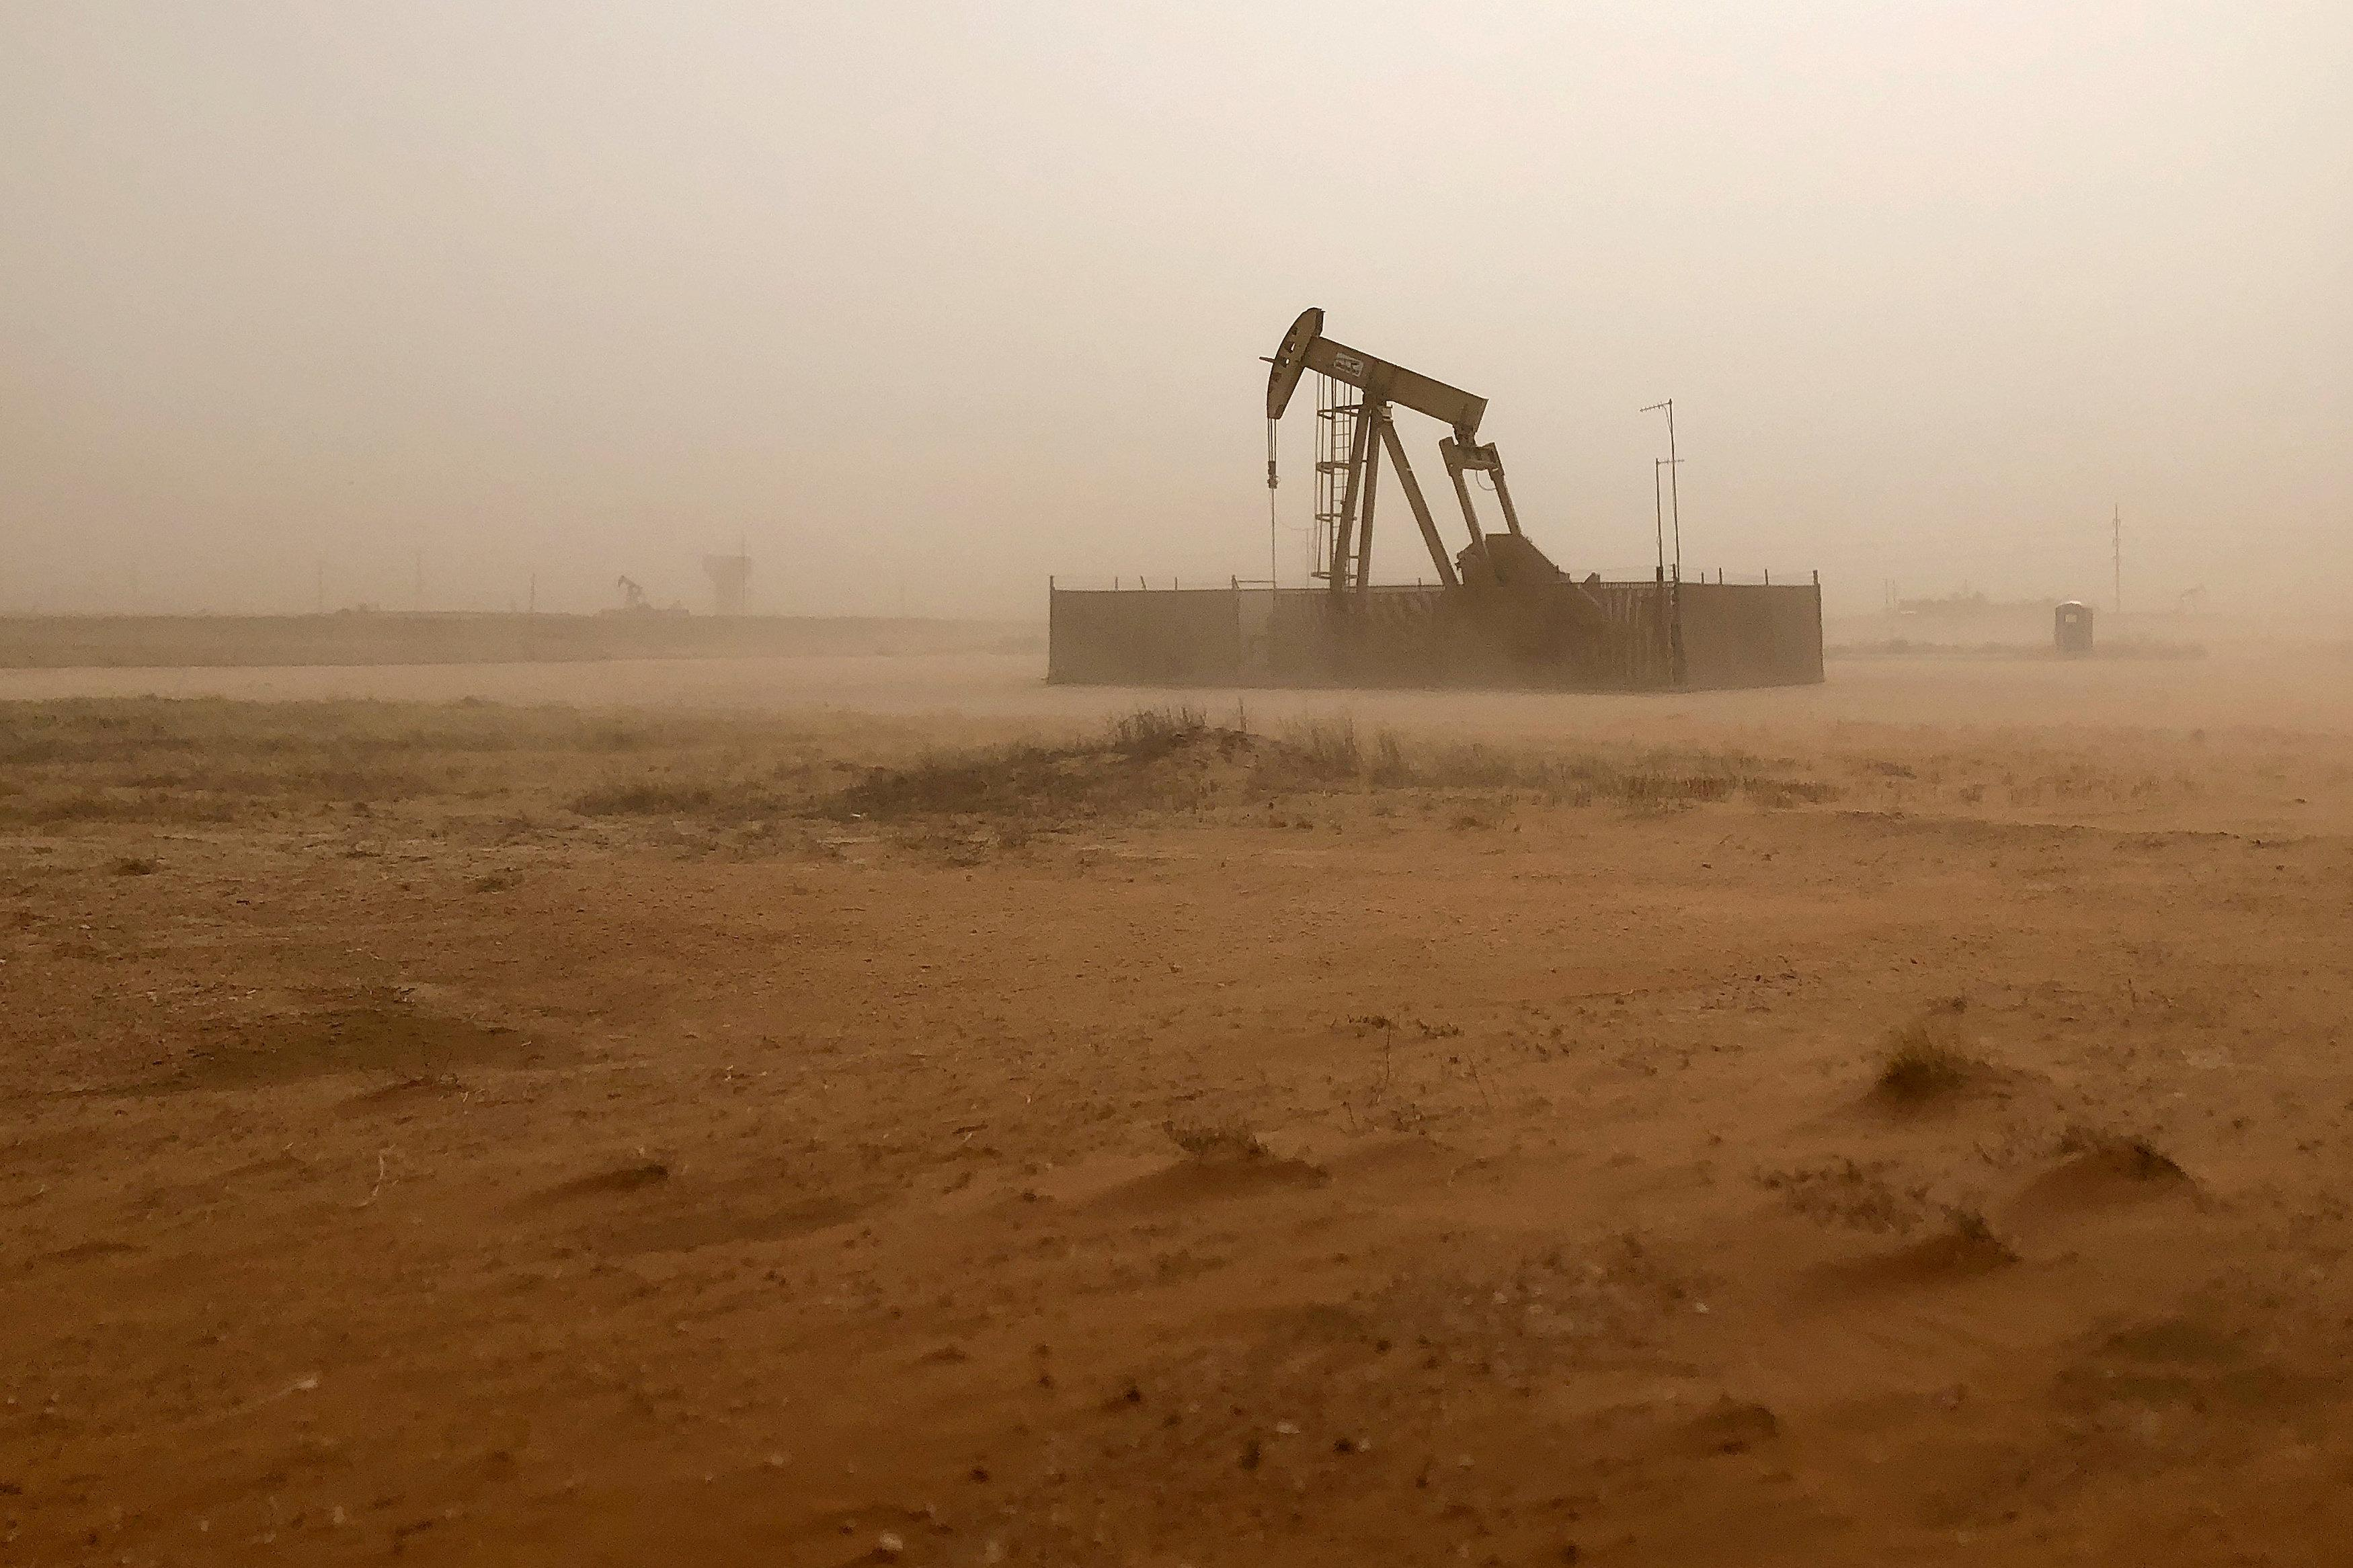 A pump jack lifts oil out of a well, during a sandstorm in Midland, Texas, U.S., April 13, 2018.    Ann Saphir